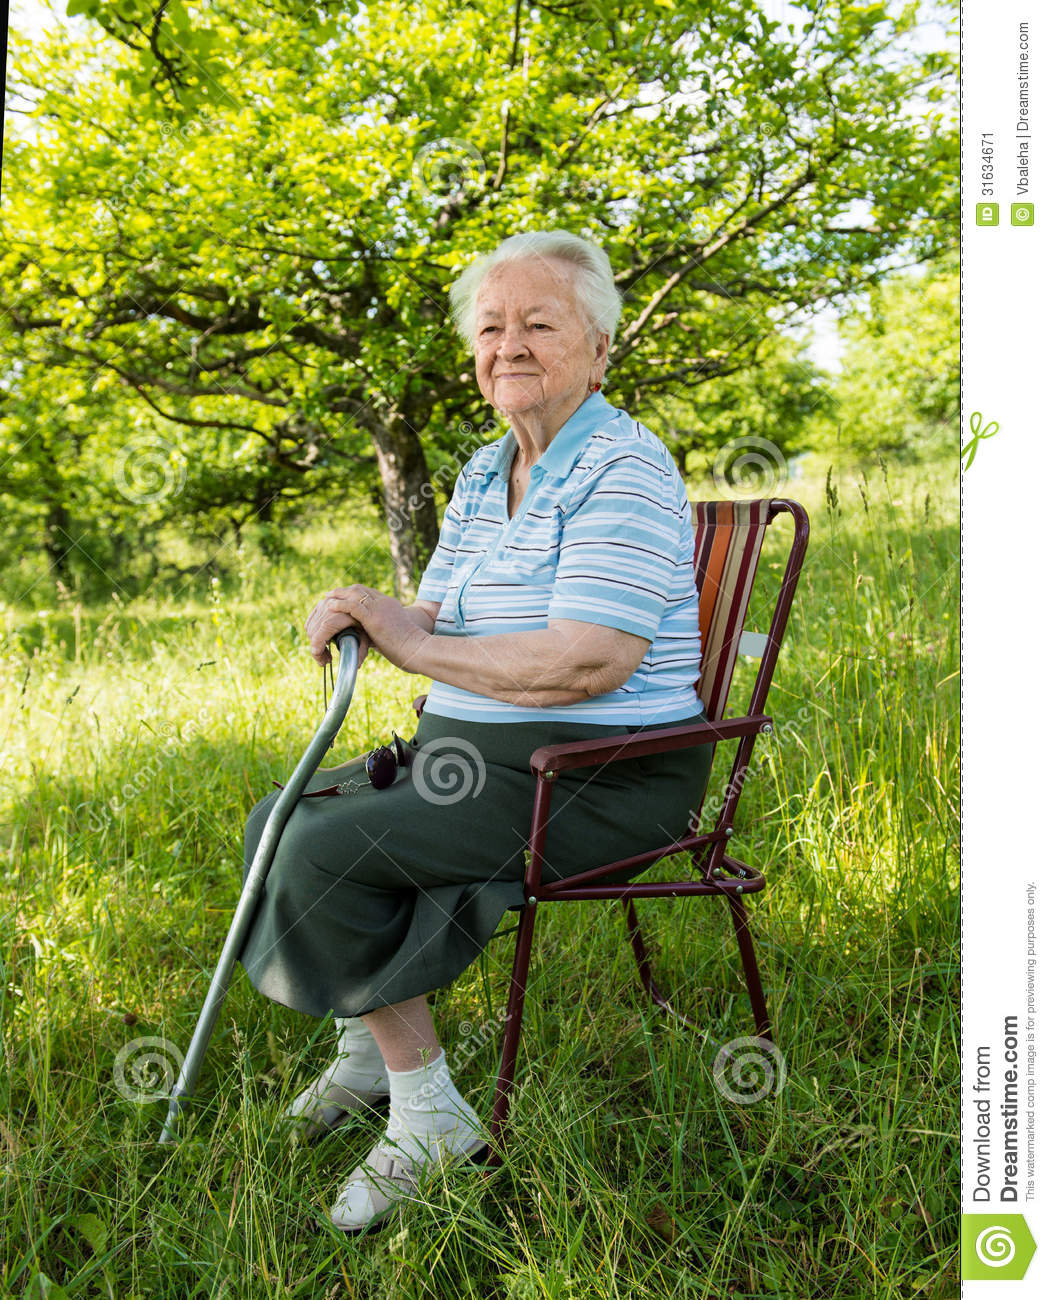 Old Woman Sitting On A Chair Stock Image - Image: 31634671